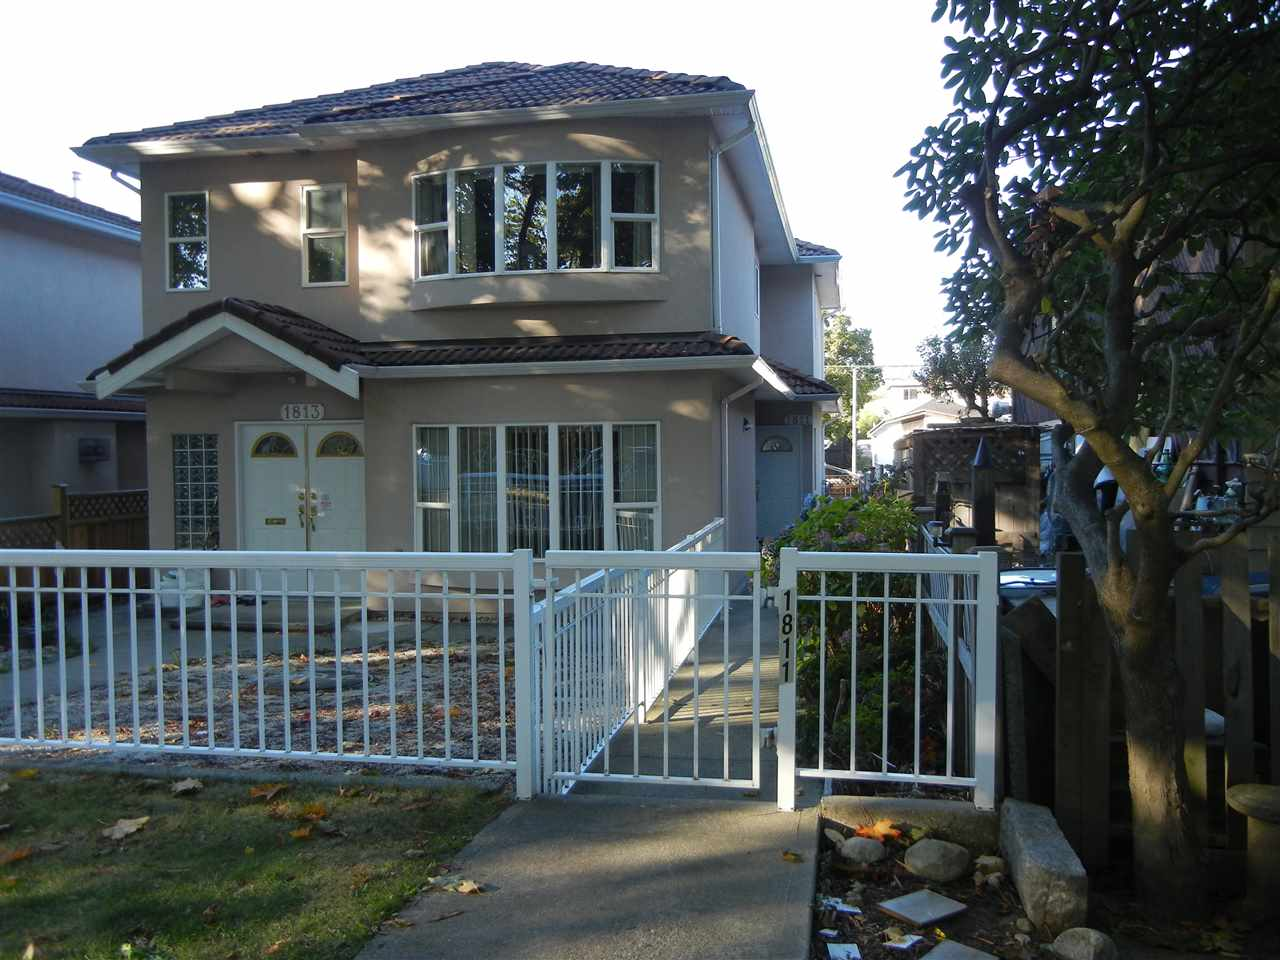 Well kept 1/2 duplex house (back unit). 3 bedrooms & 2 1/2 bathrooms, tile roof. Radiant heating. Gas fireplace in very good location. Close to Broadway skytrain station, bus-stops, shops and restaurants. Close to Trout Lake and Community Centre. Must see!! open house Saturday ( 20 JAN ) 2:00PM-4:00PM.